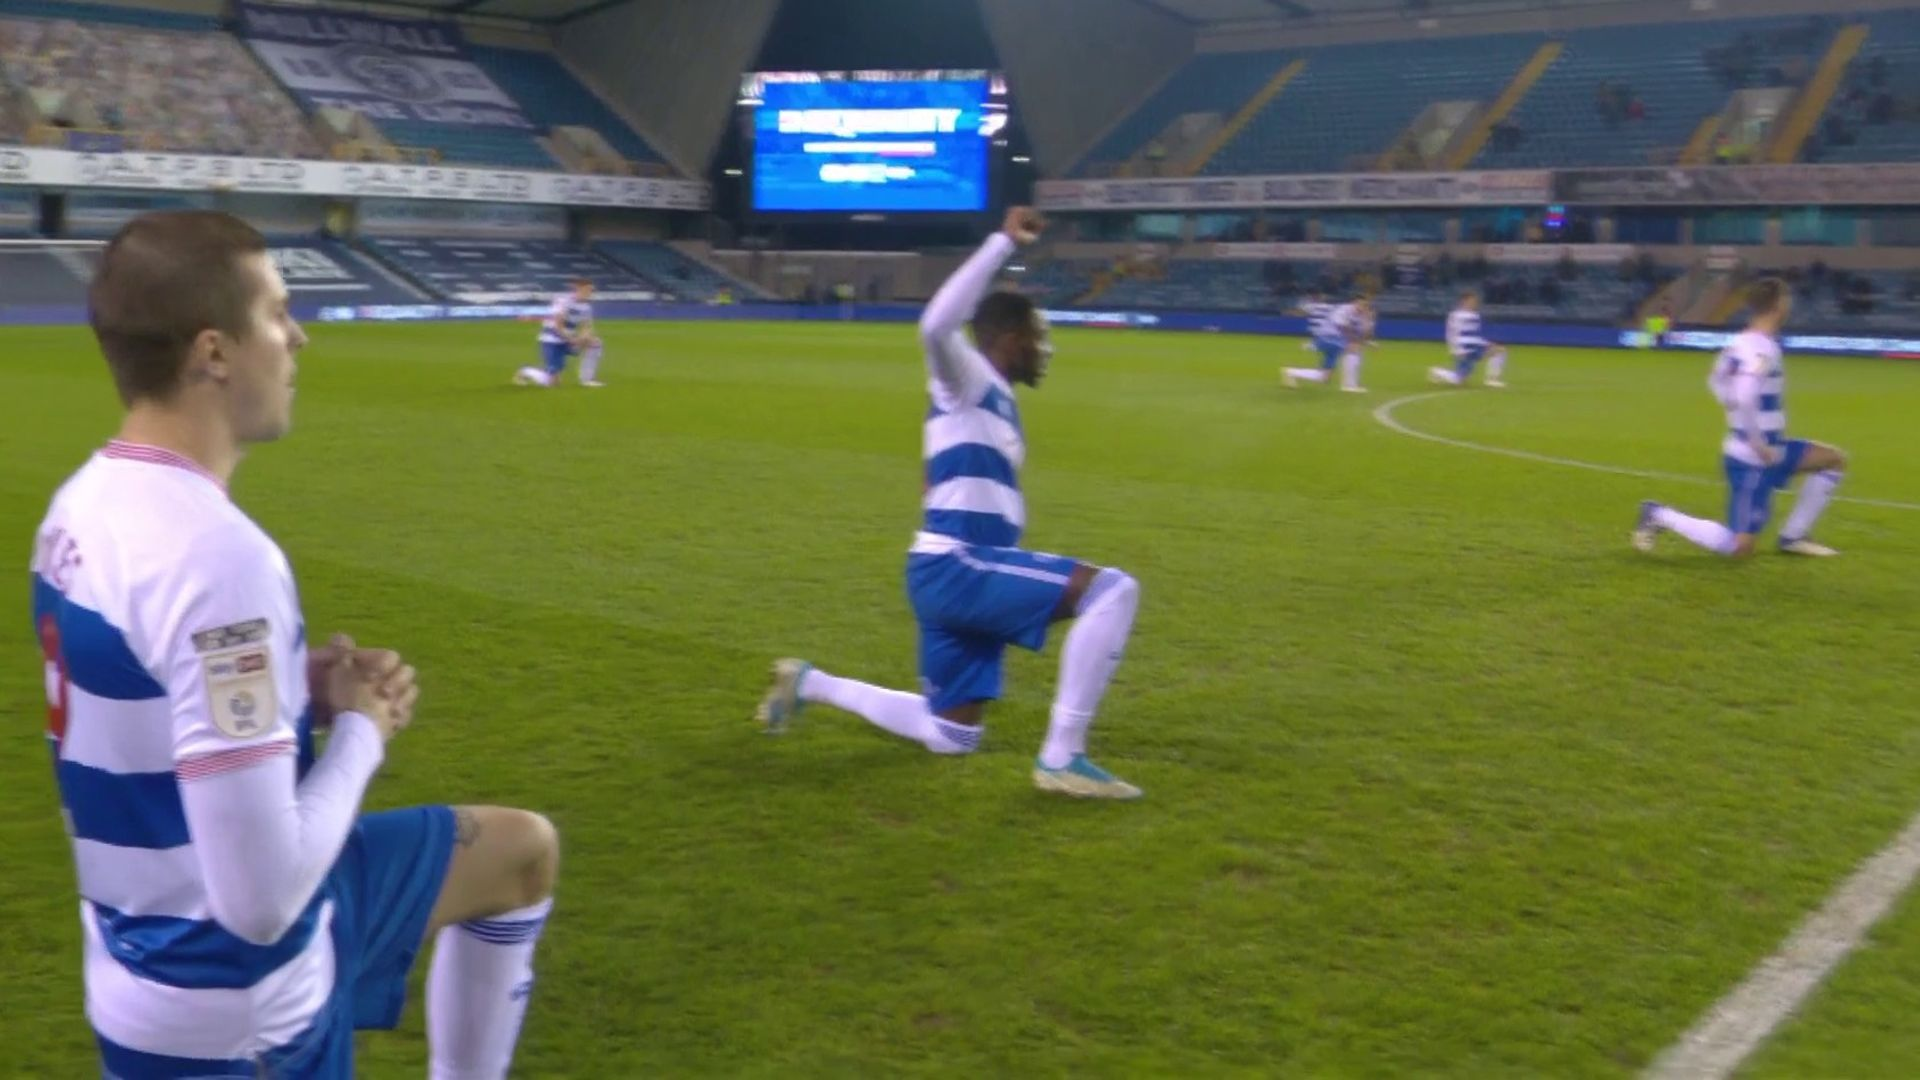 Millwall fans applaud as team stands while QPR take knee